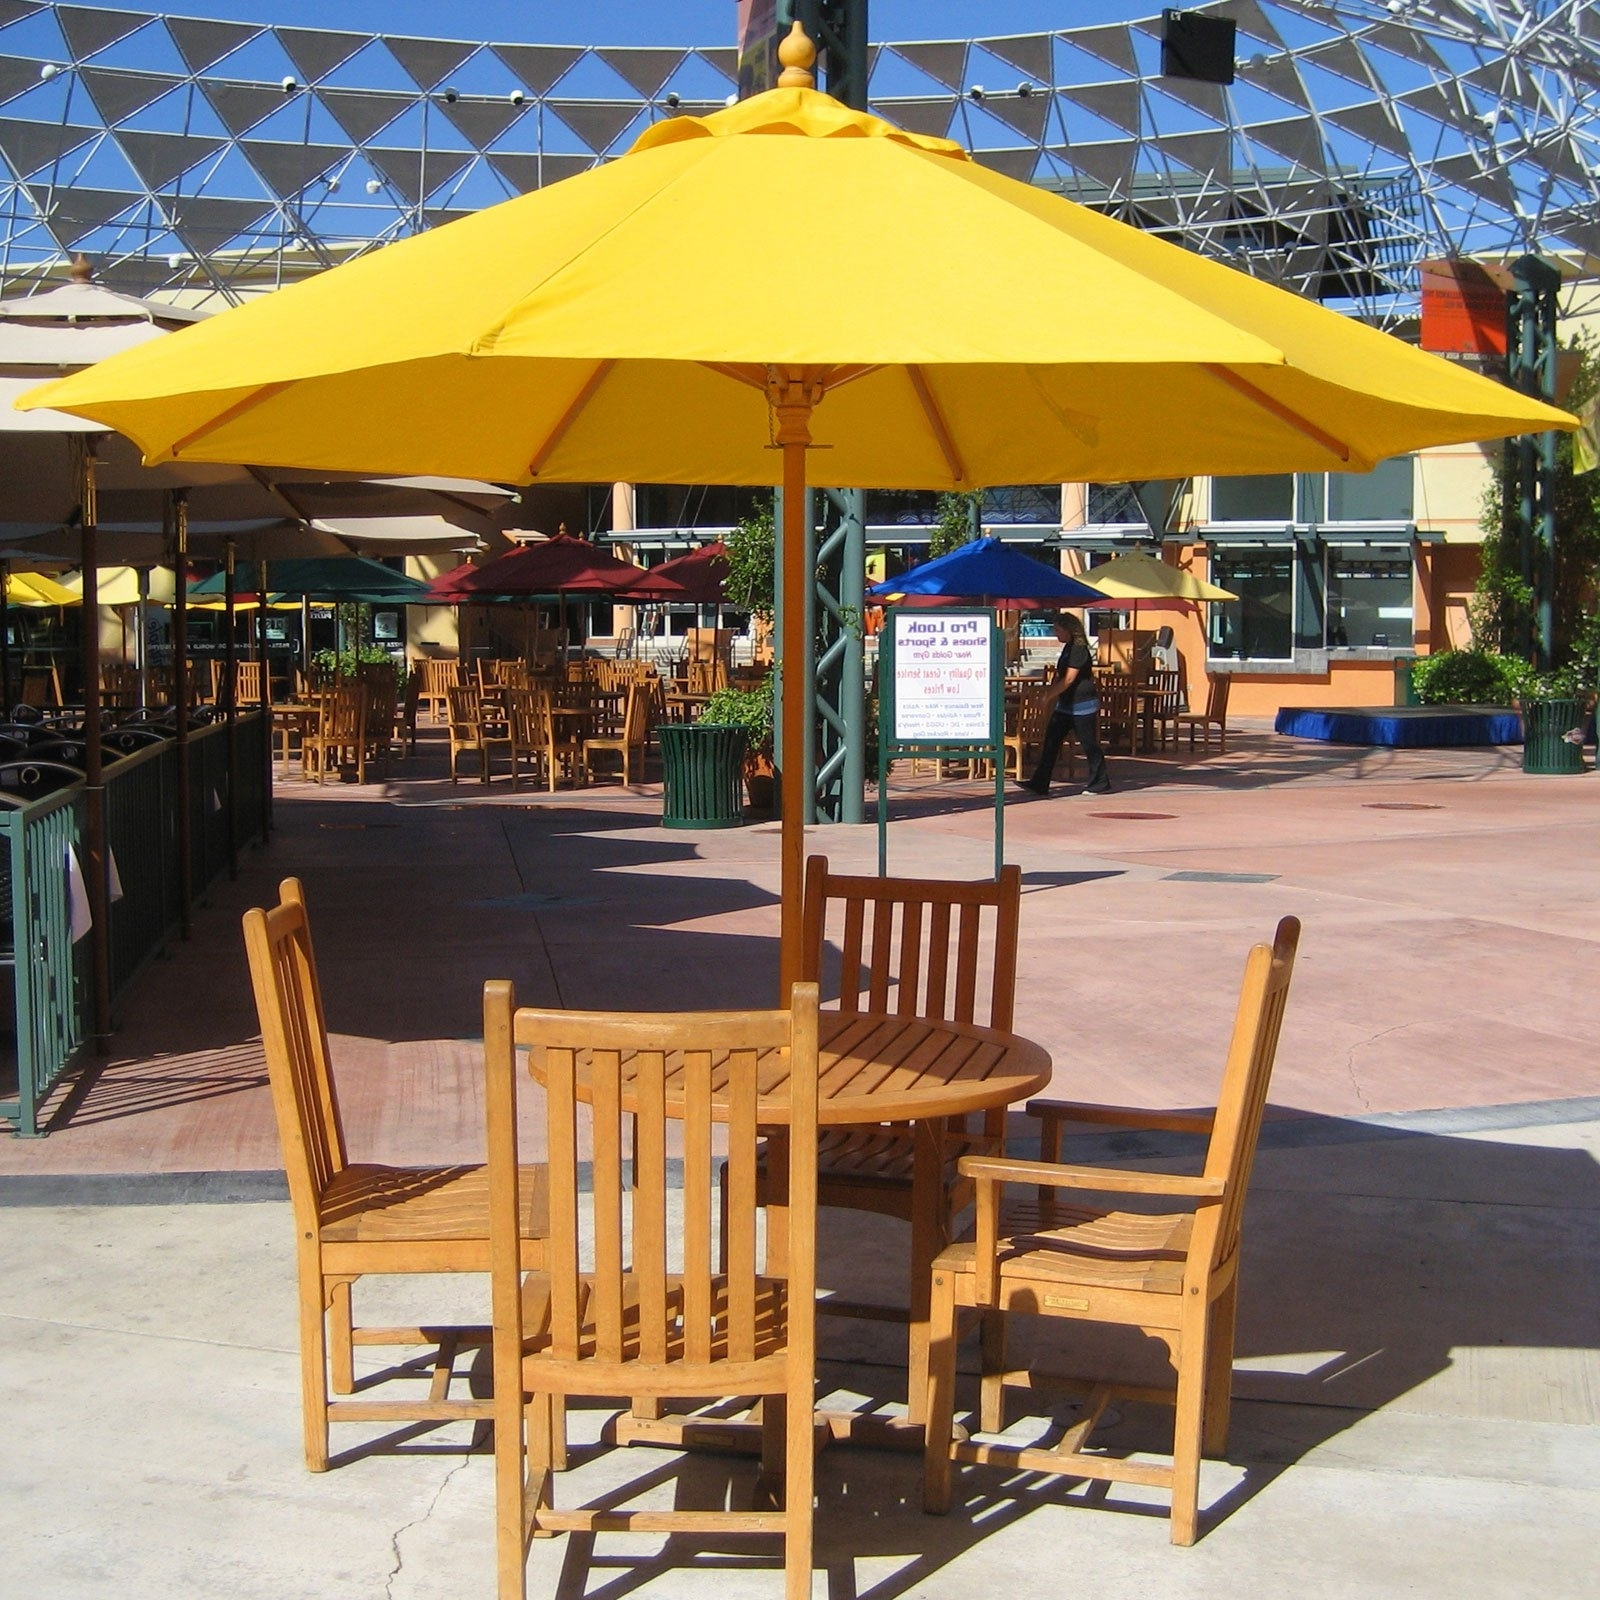 Patio Tables With Umbrellas Pertaining To Recent Tips To Choose Patio Table Umbrella — Inspire Furniture Ideas (View 12 of 20)